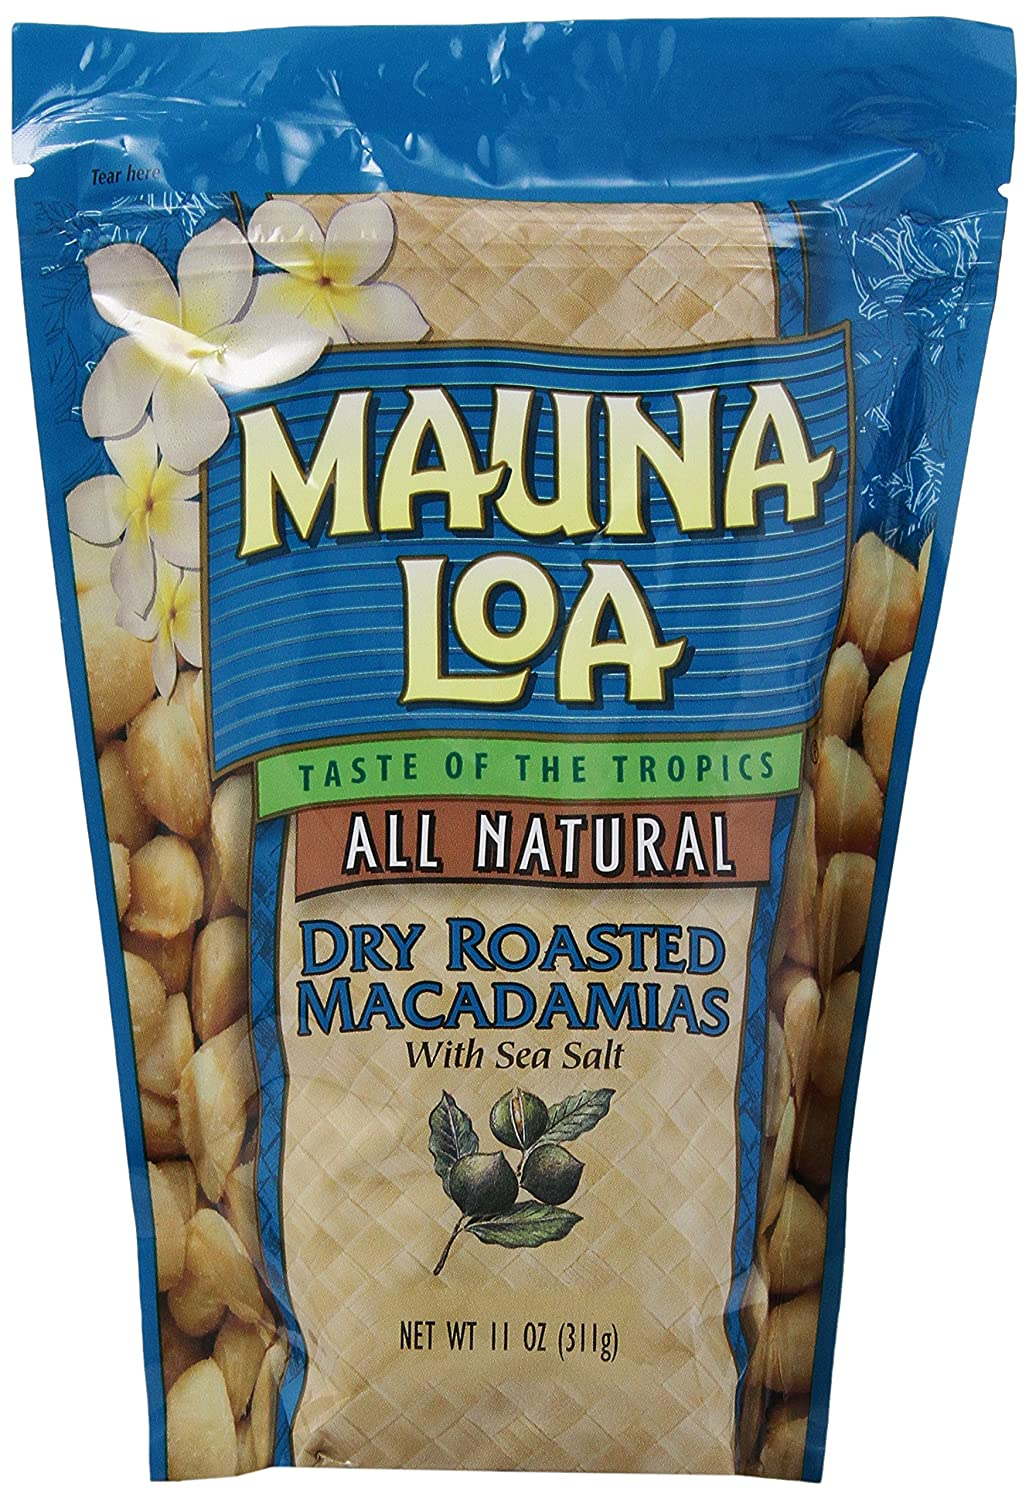 Dry Roasted Macadamias